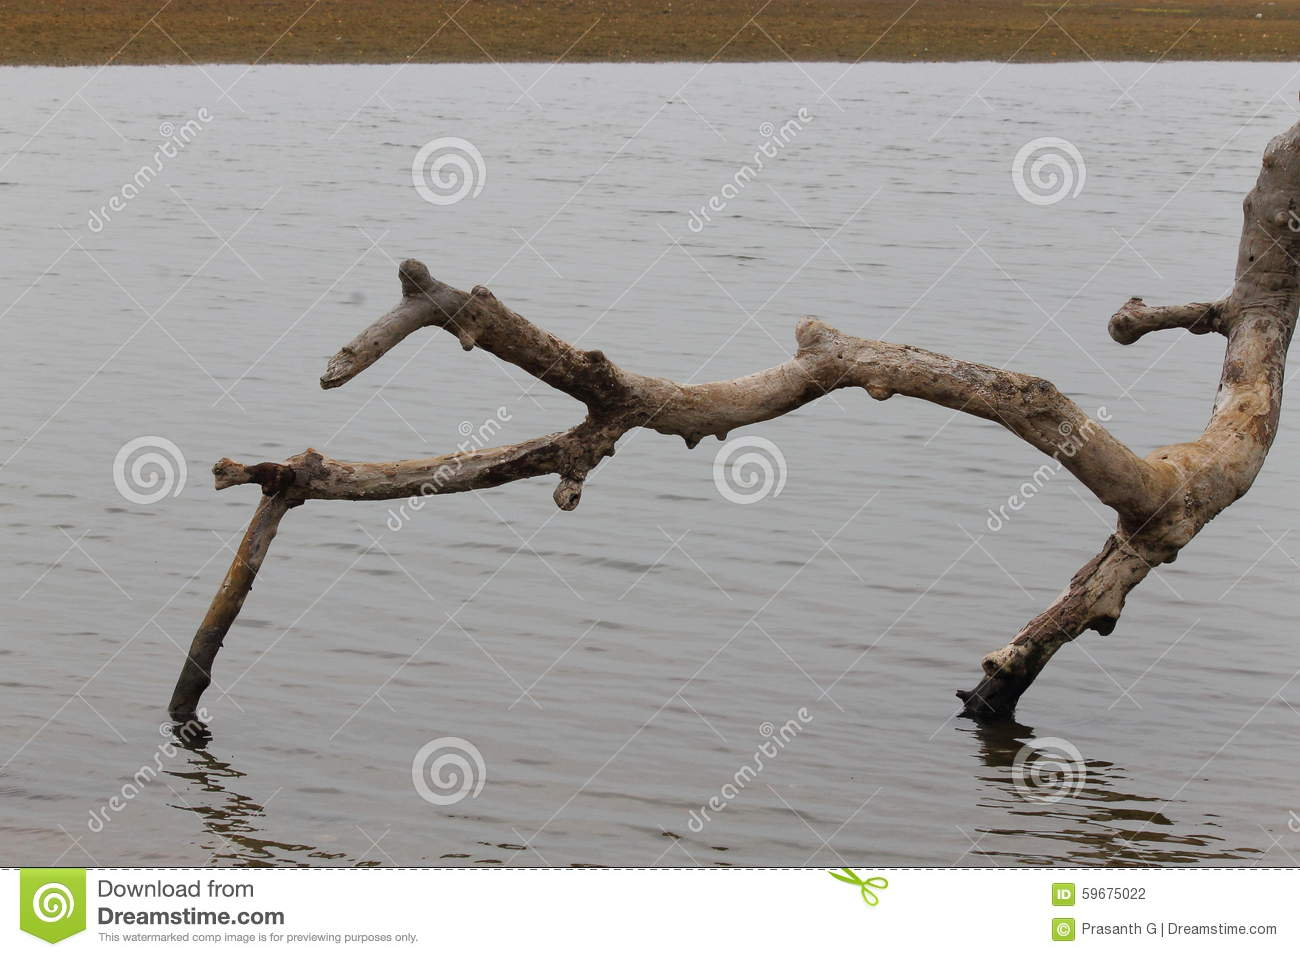 Fallen Tree Branch Stock Photo - Image: 59675022